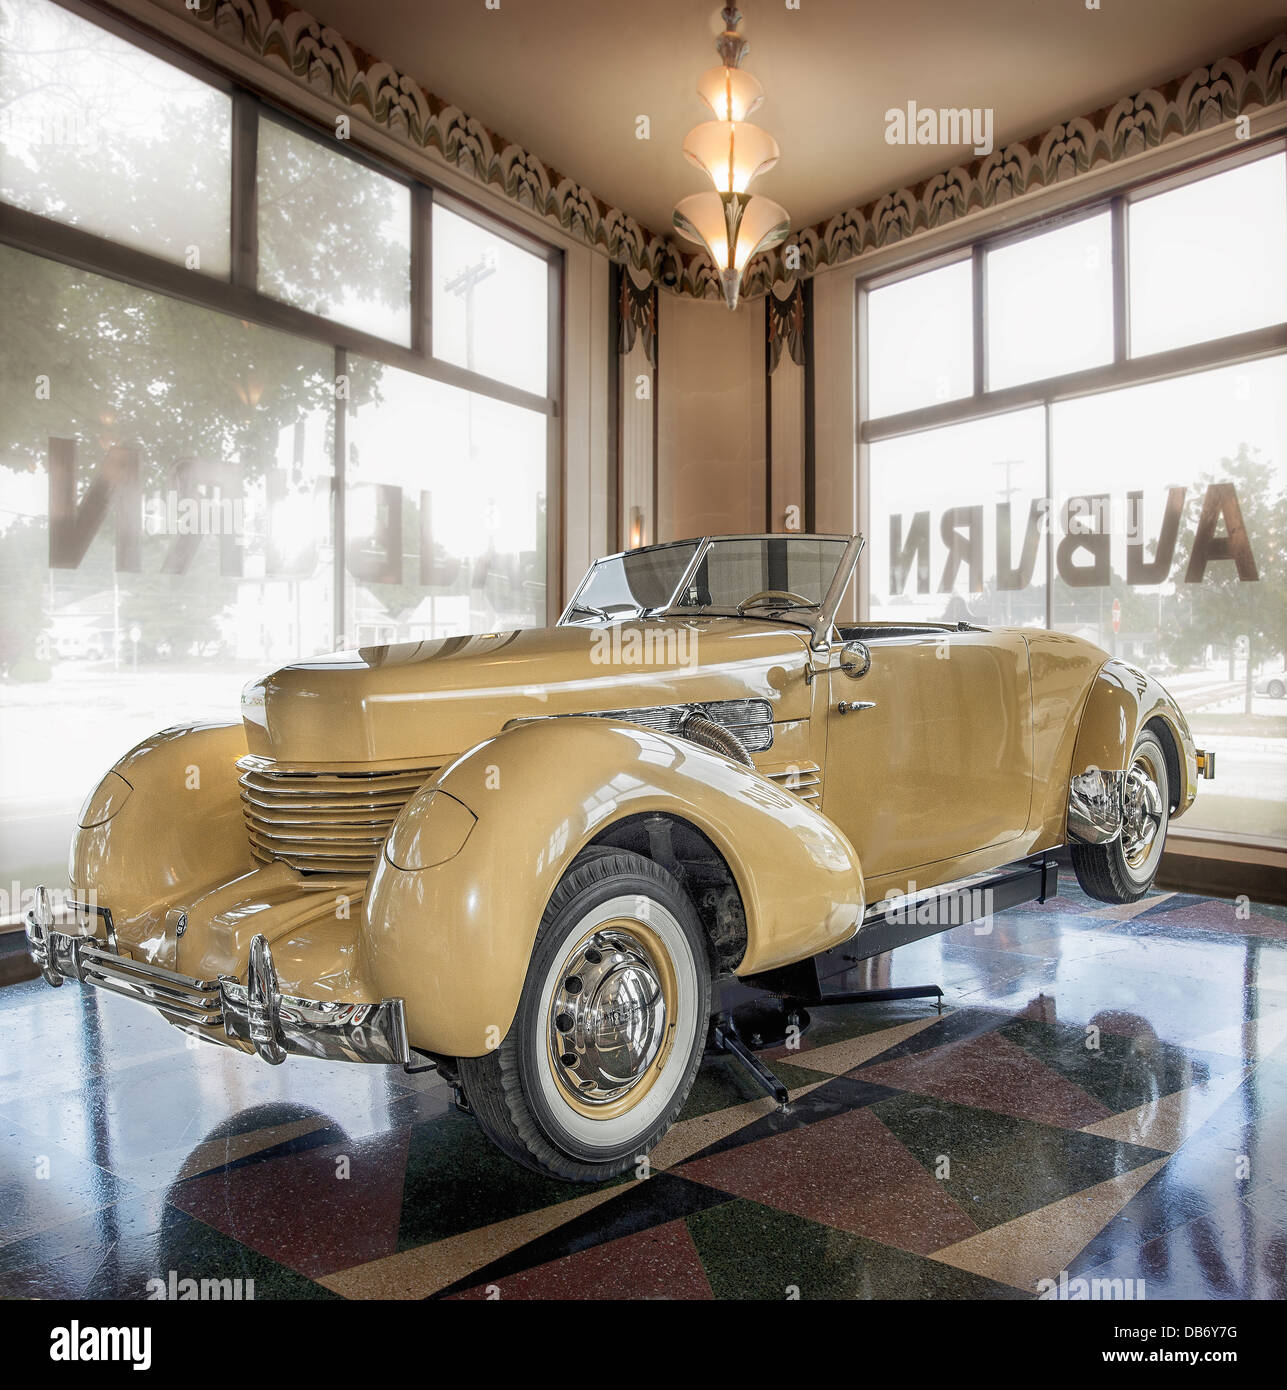 A 1937 Cord 812 Sportsman SC on display at The Auburn Cord Duesenberg  Museum in Auburn Indiana - Stock Image